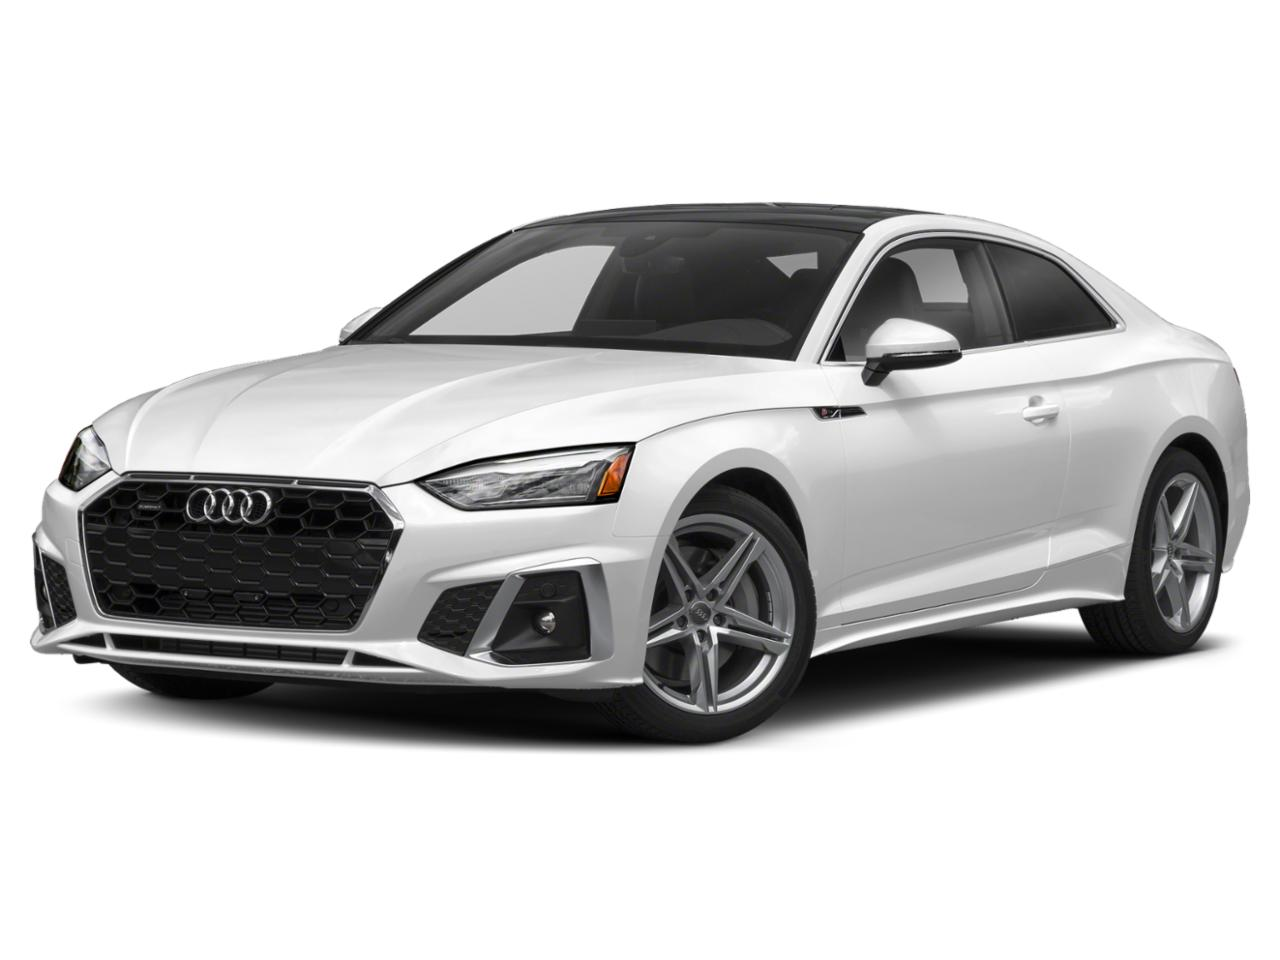 2020 Audi A5 Sportback Vehicle Photo in Appleton, WI 54913